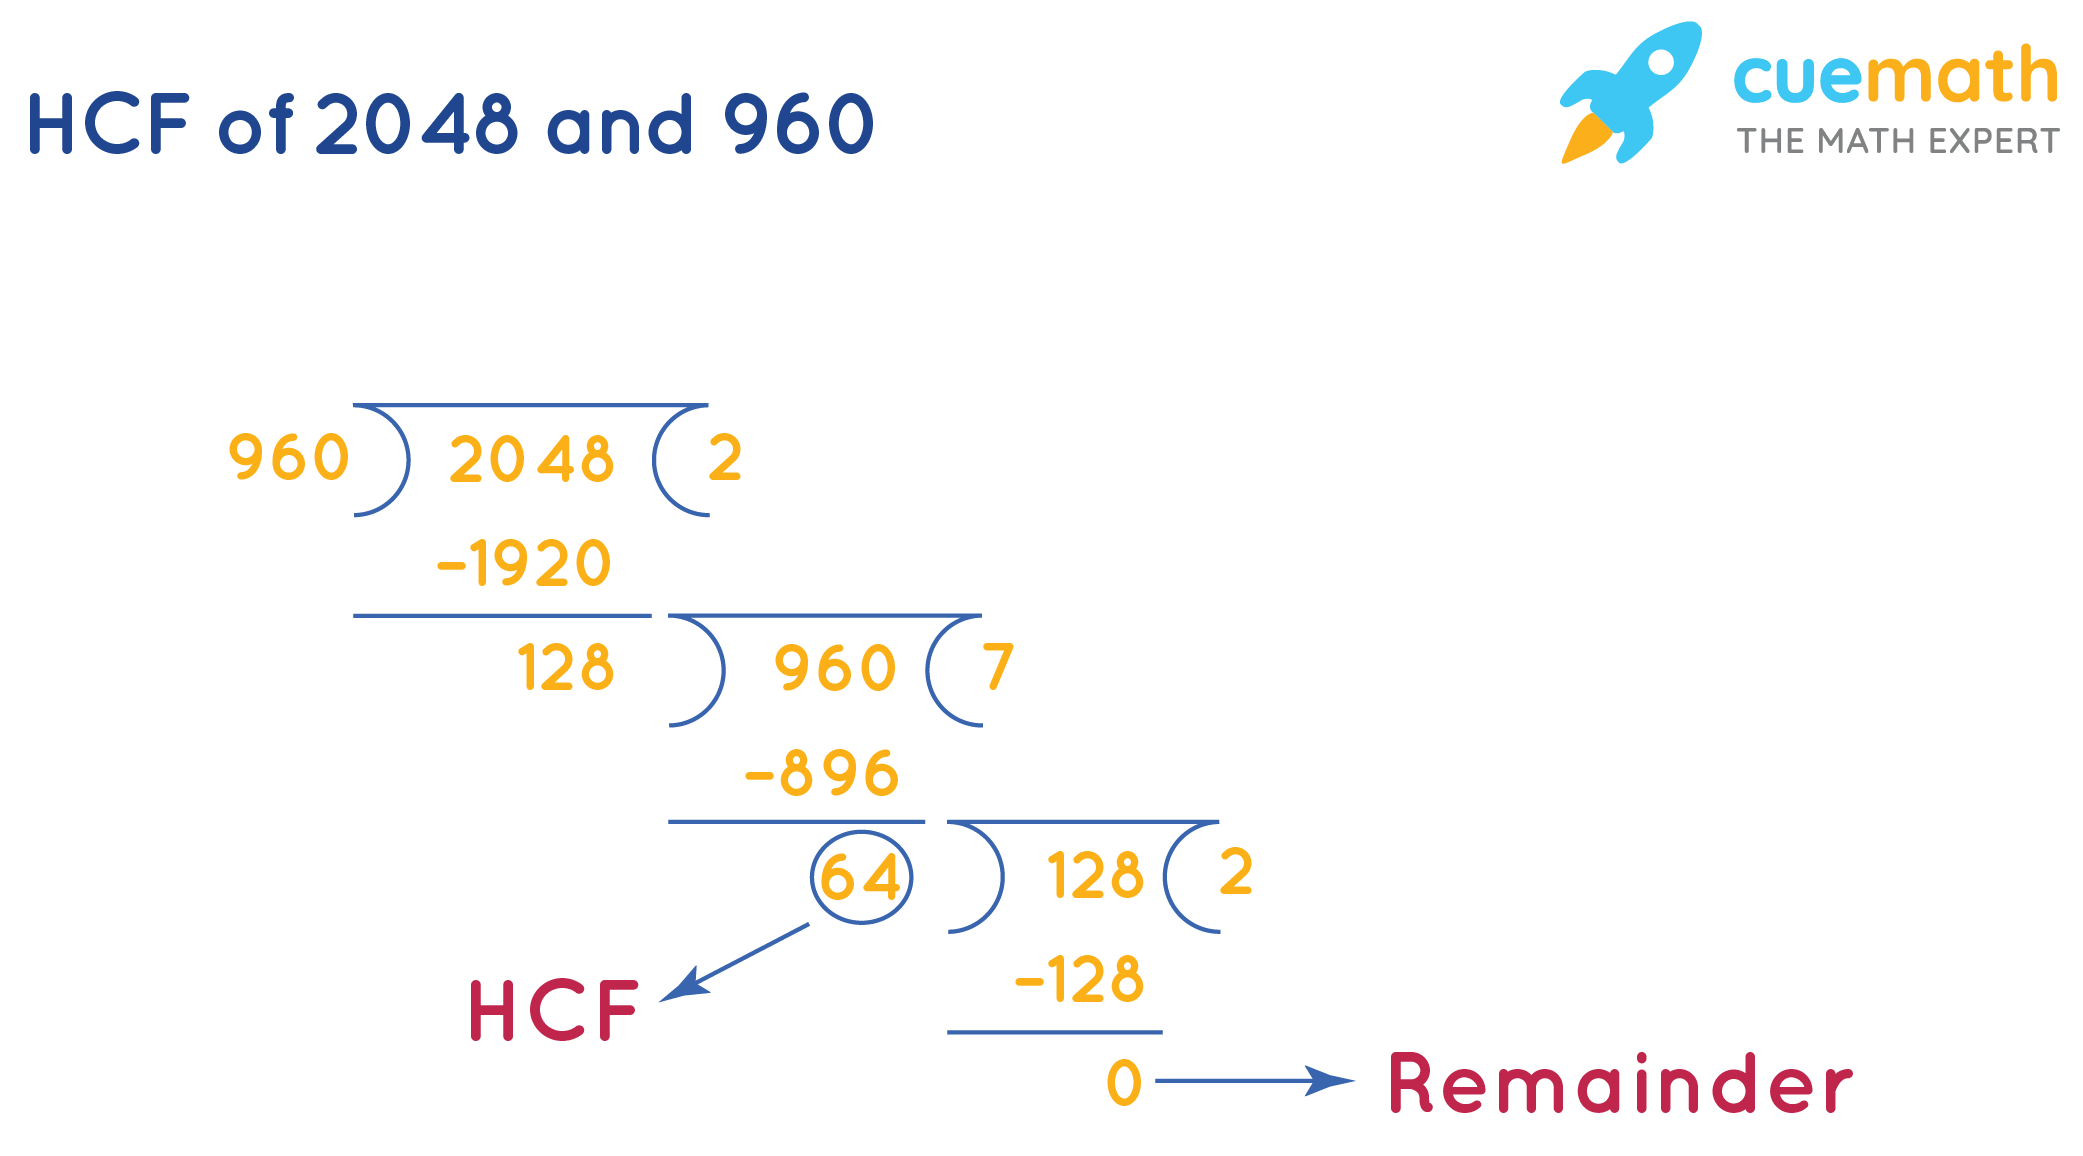 HCF of 2048 and 960